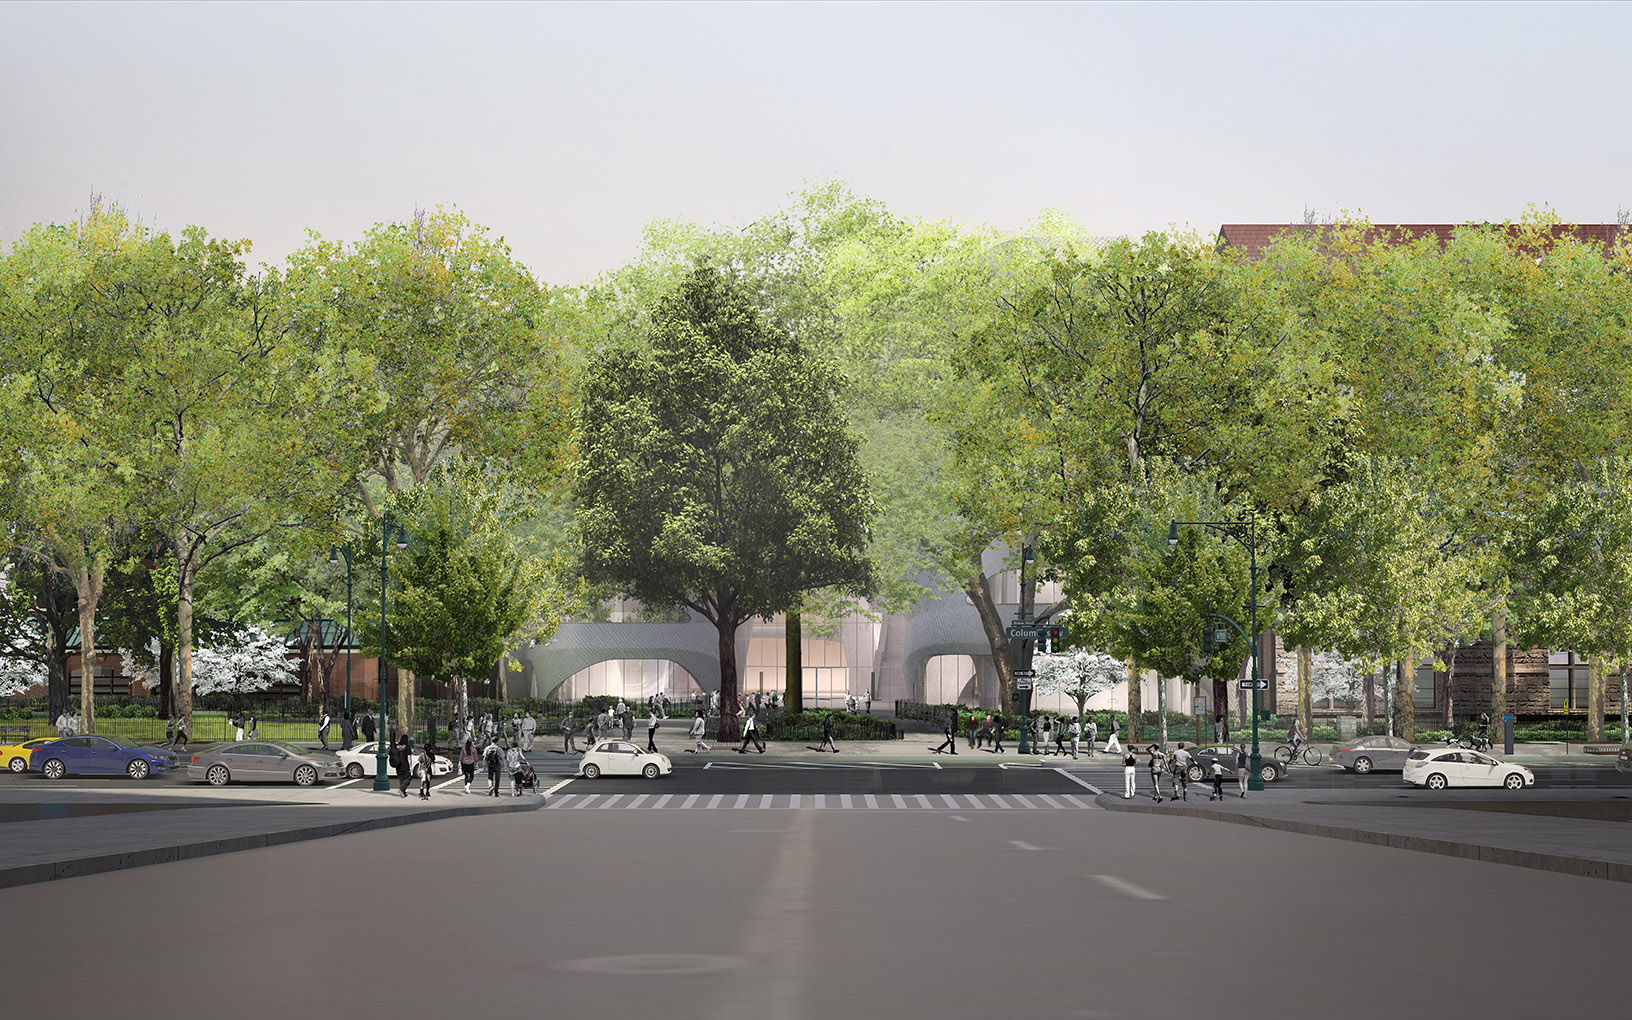 Rendering of the front facade of the Gilder addition (flanked by older museum buildings on either side) during summer, leafy trees in the foreground.